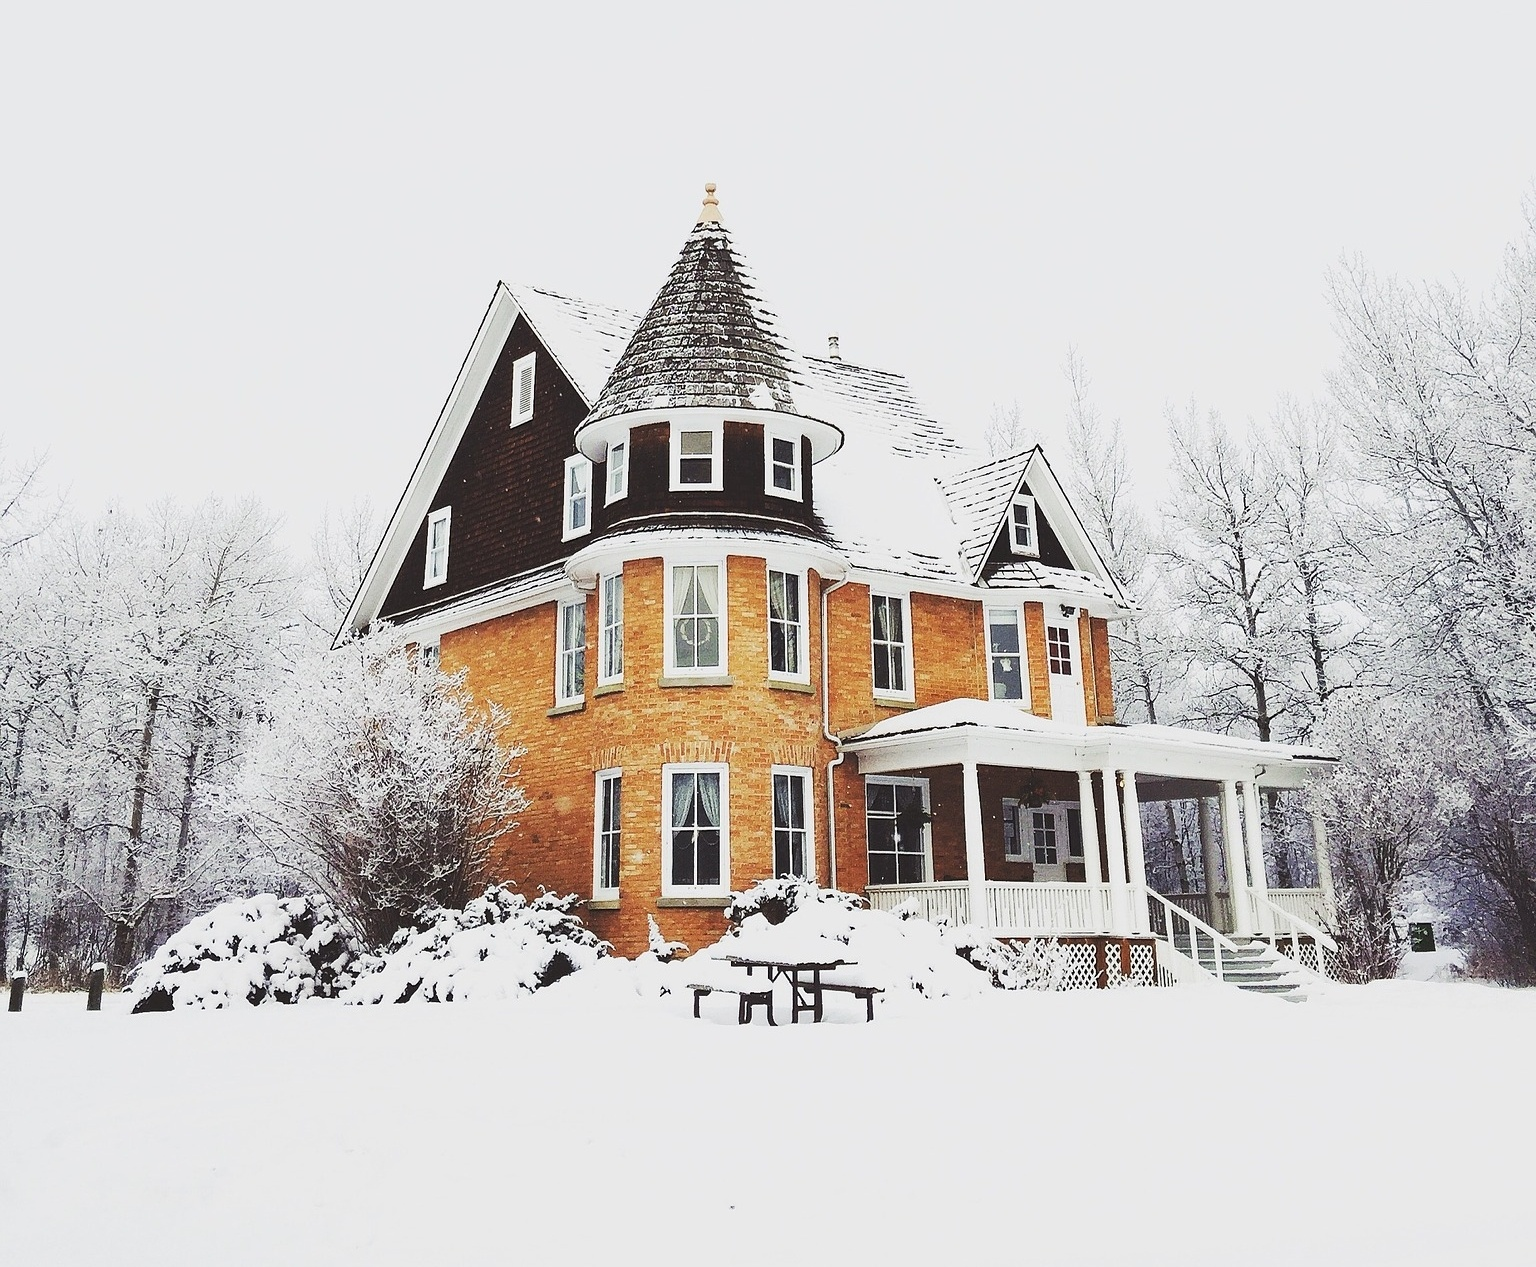 8 Step Winter Prep Checklist to Winterize Your Home